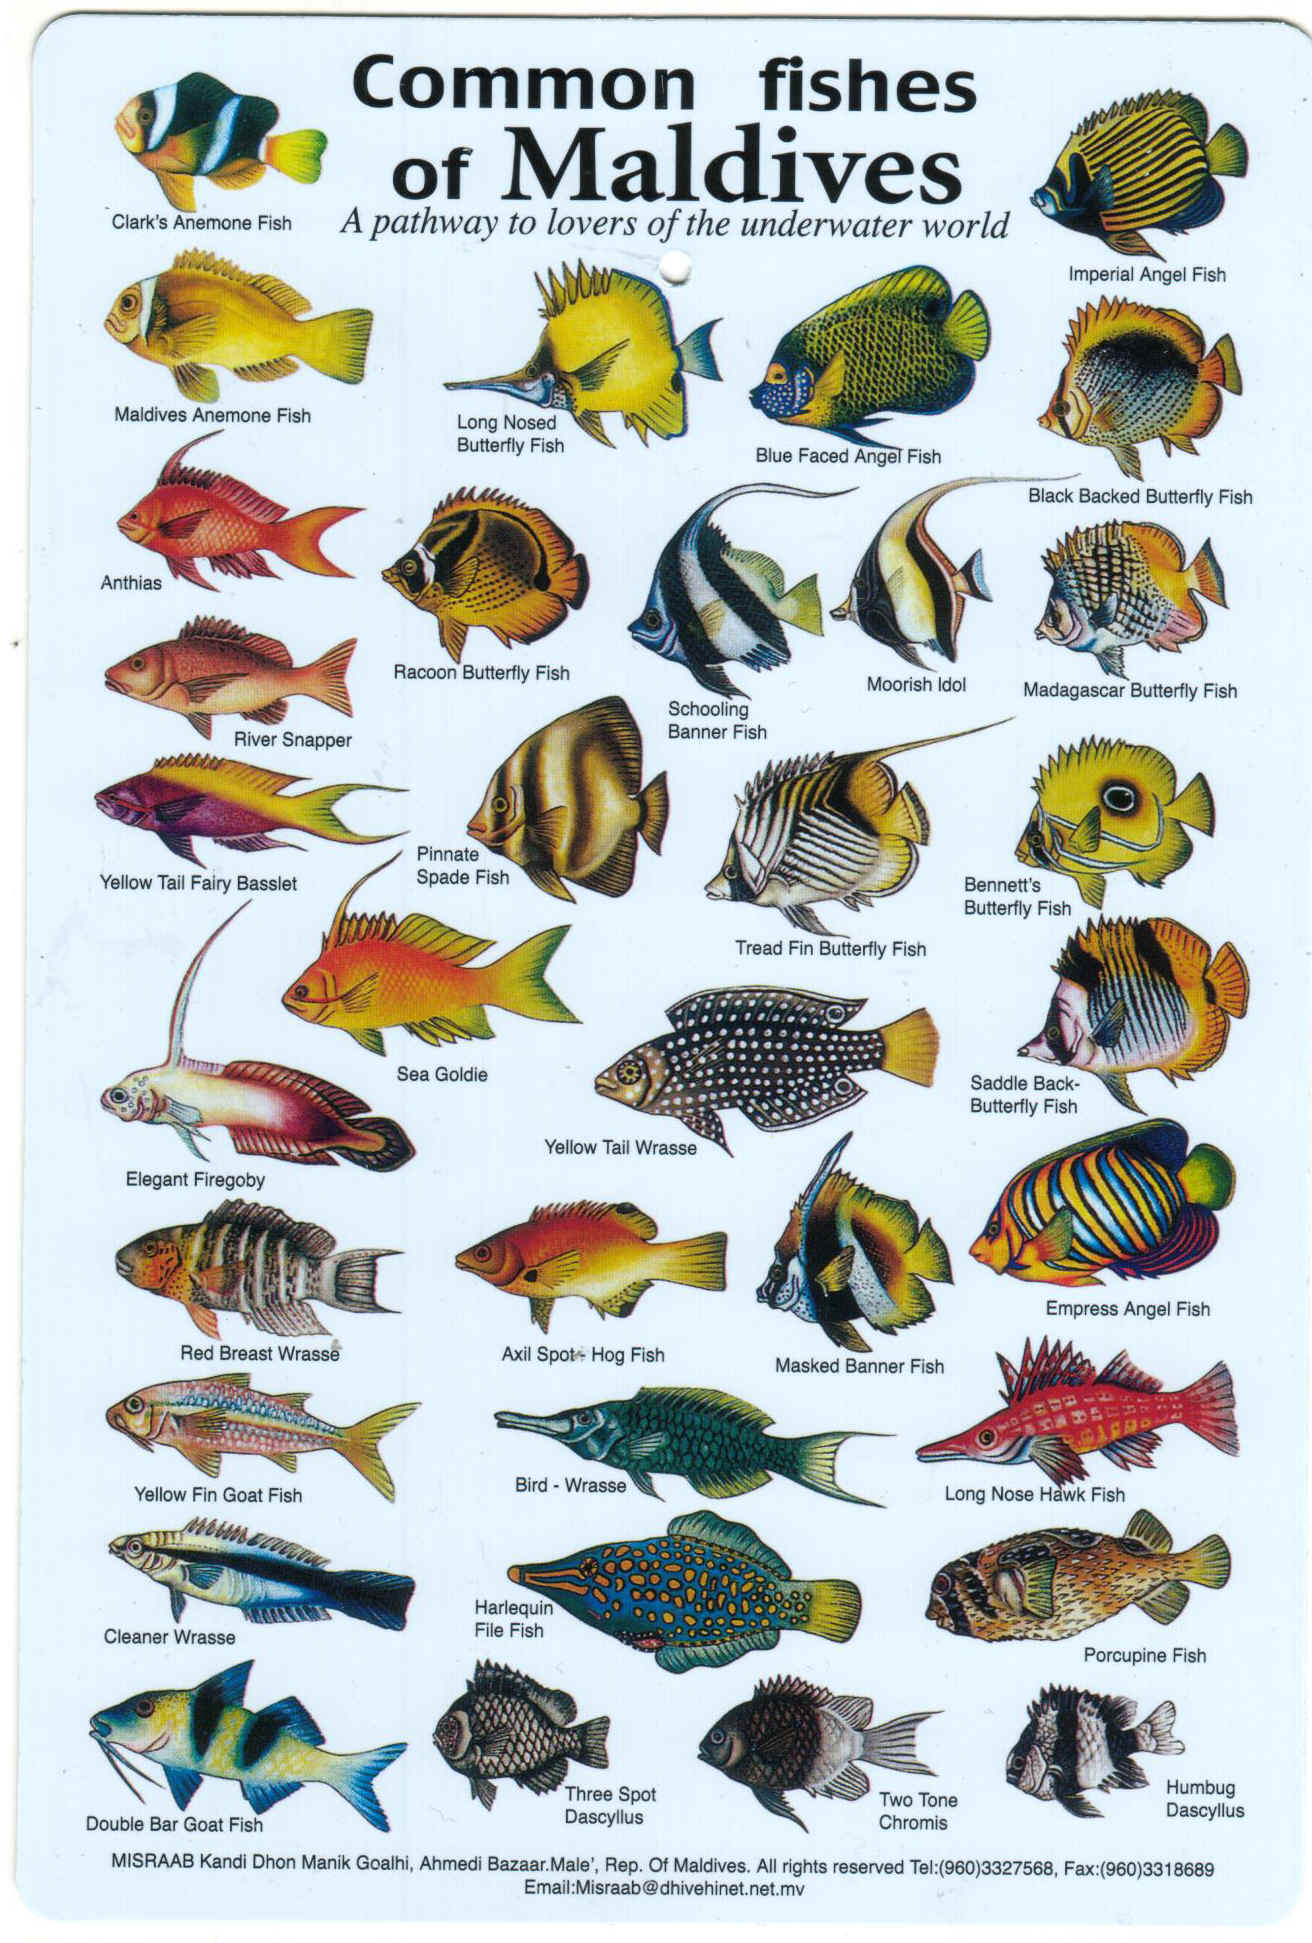 Fishes of the Maldives Identification Chart (water resistant double-sided-printed on card then laminated)